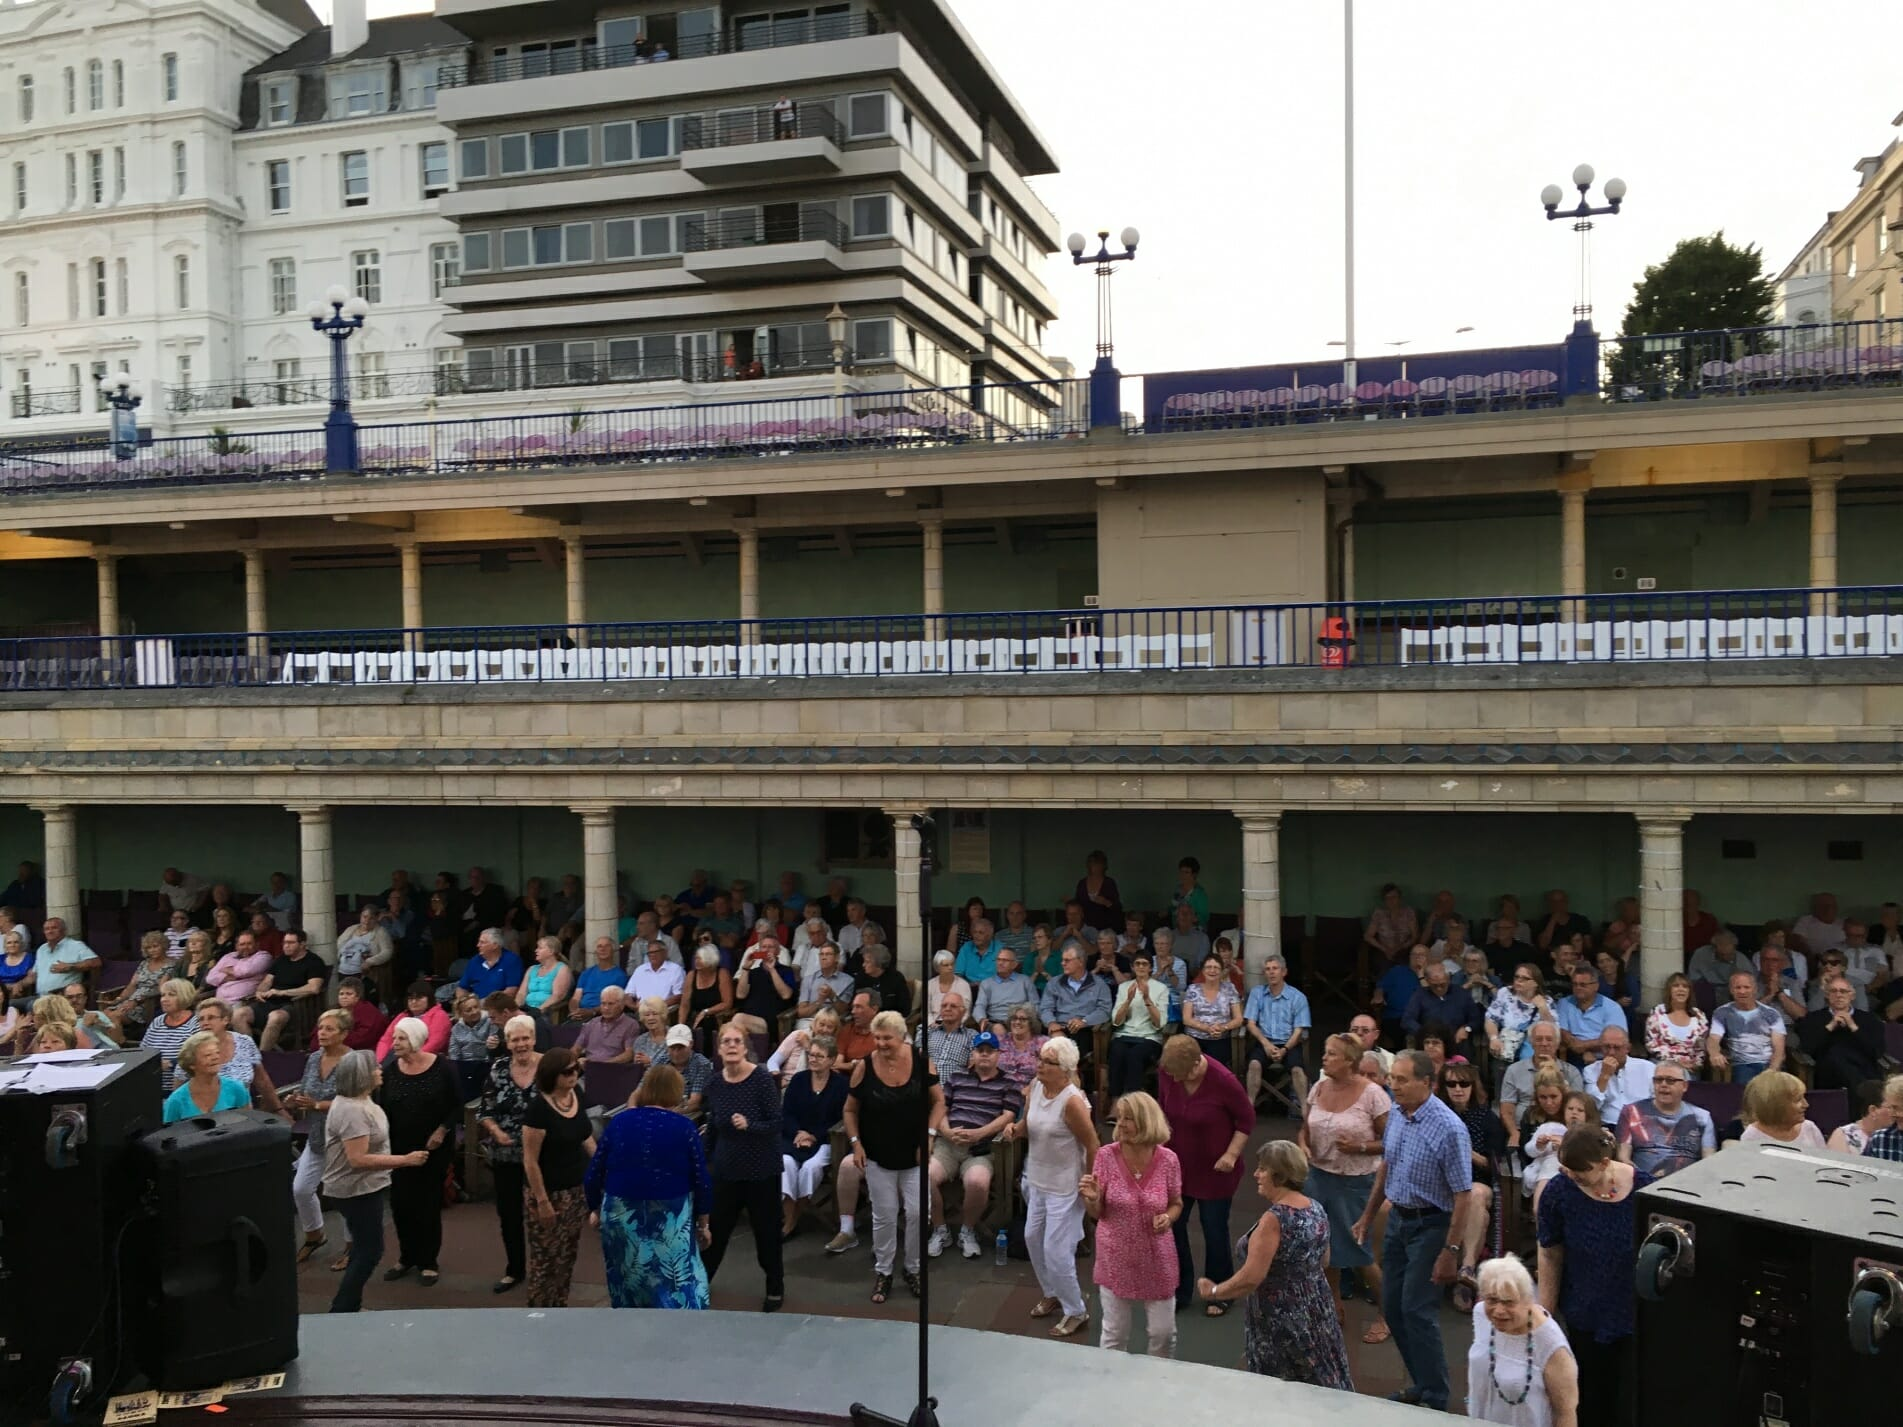 The Zoots, Eastbourne Bandstand, Sixties show Eastbourne Bandstand, 60s show, 1960's show, sixties show, Zoots sixties show, 60s tribute show, Band in Eastbourne, Sixties eastbourne bandstand,